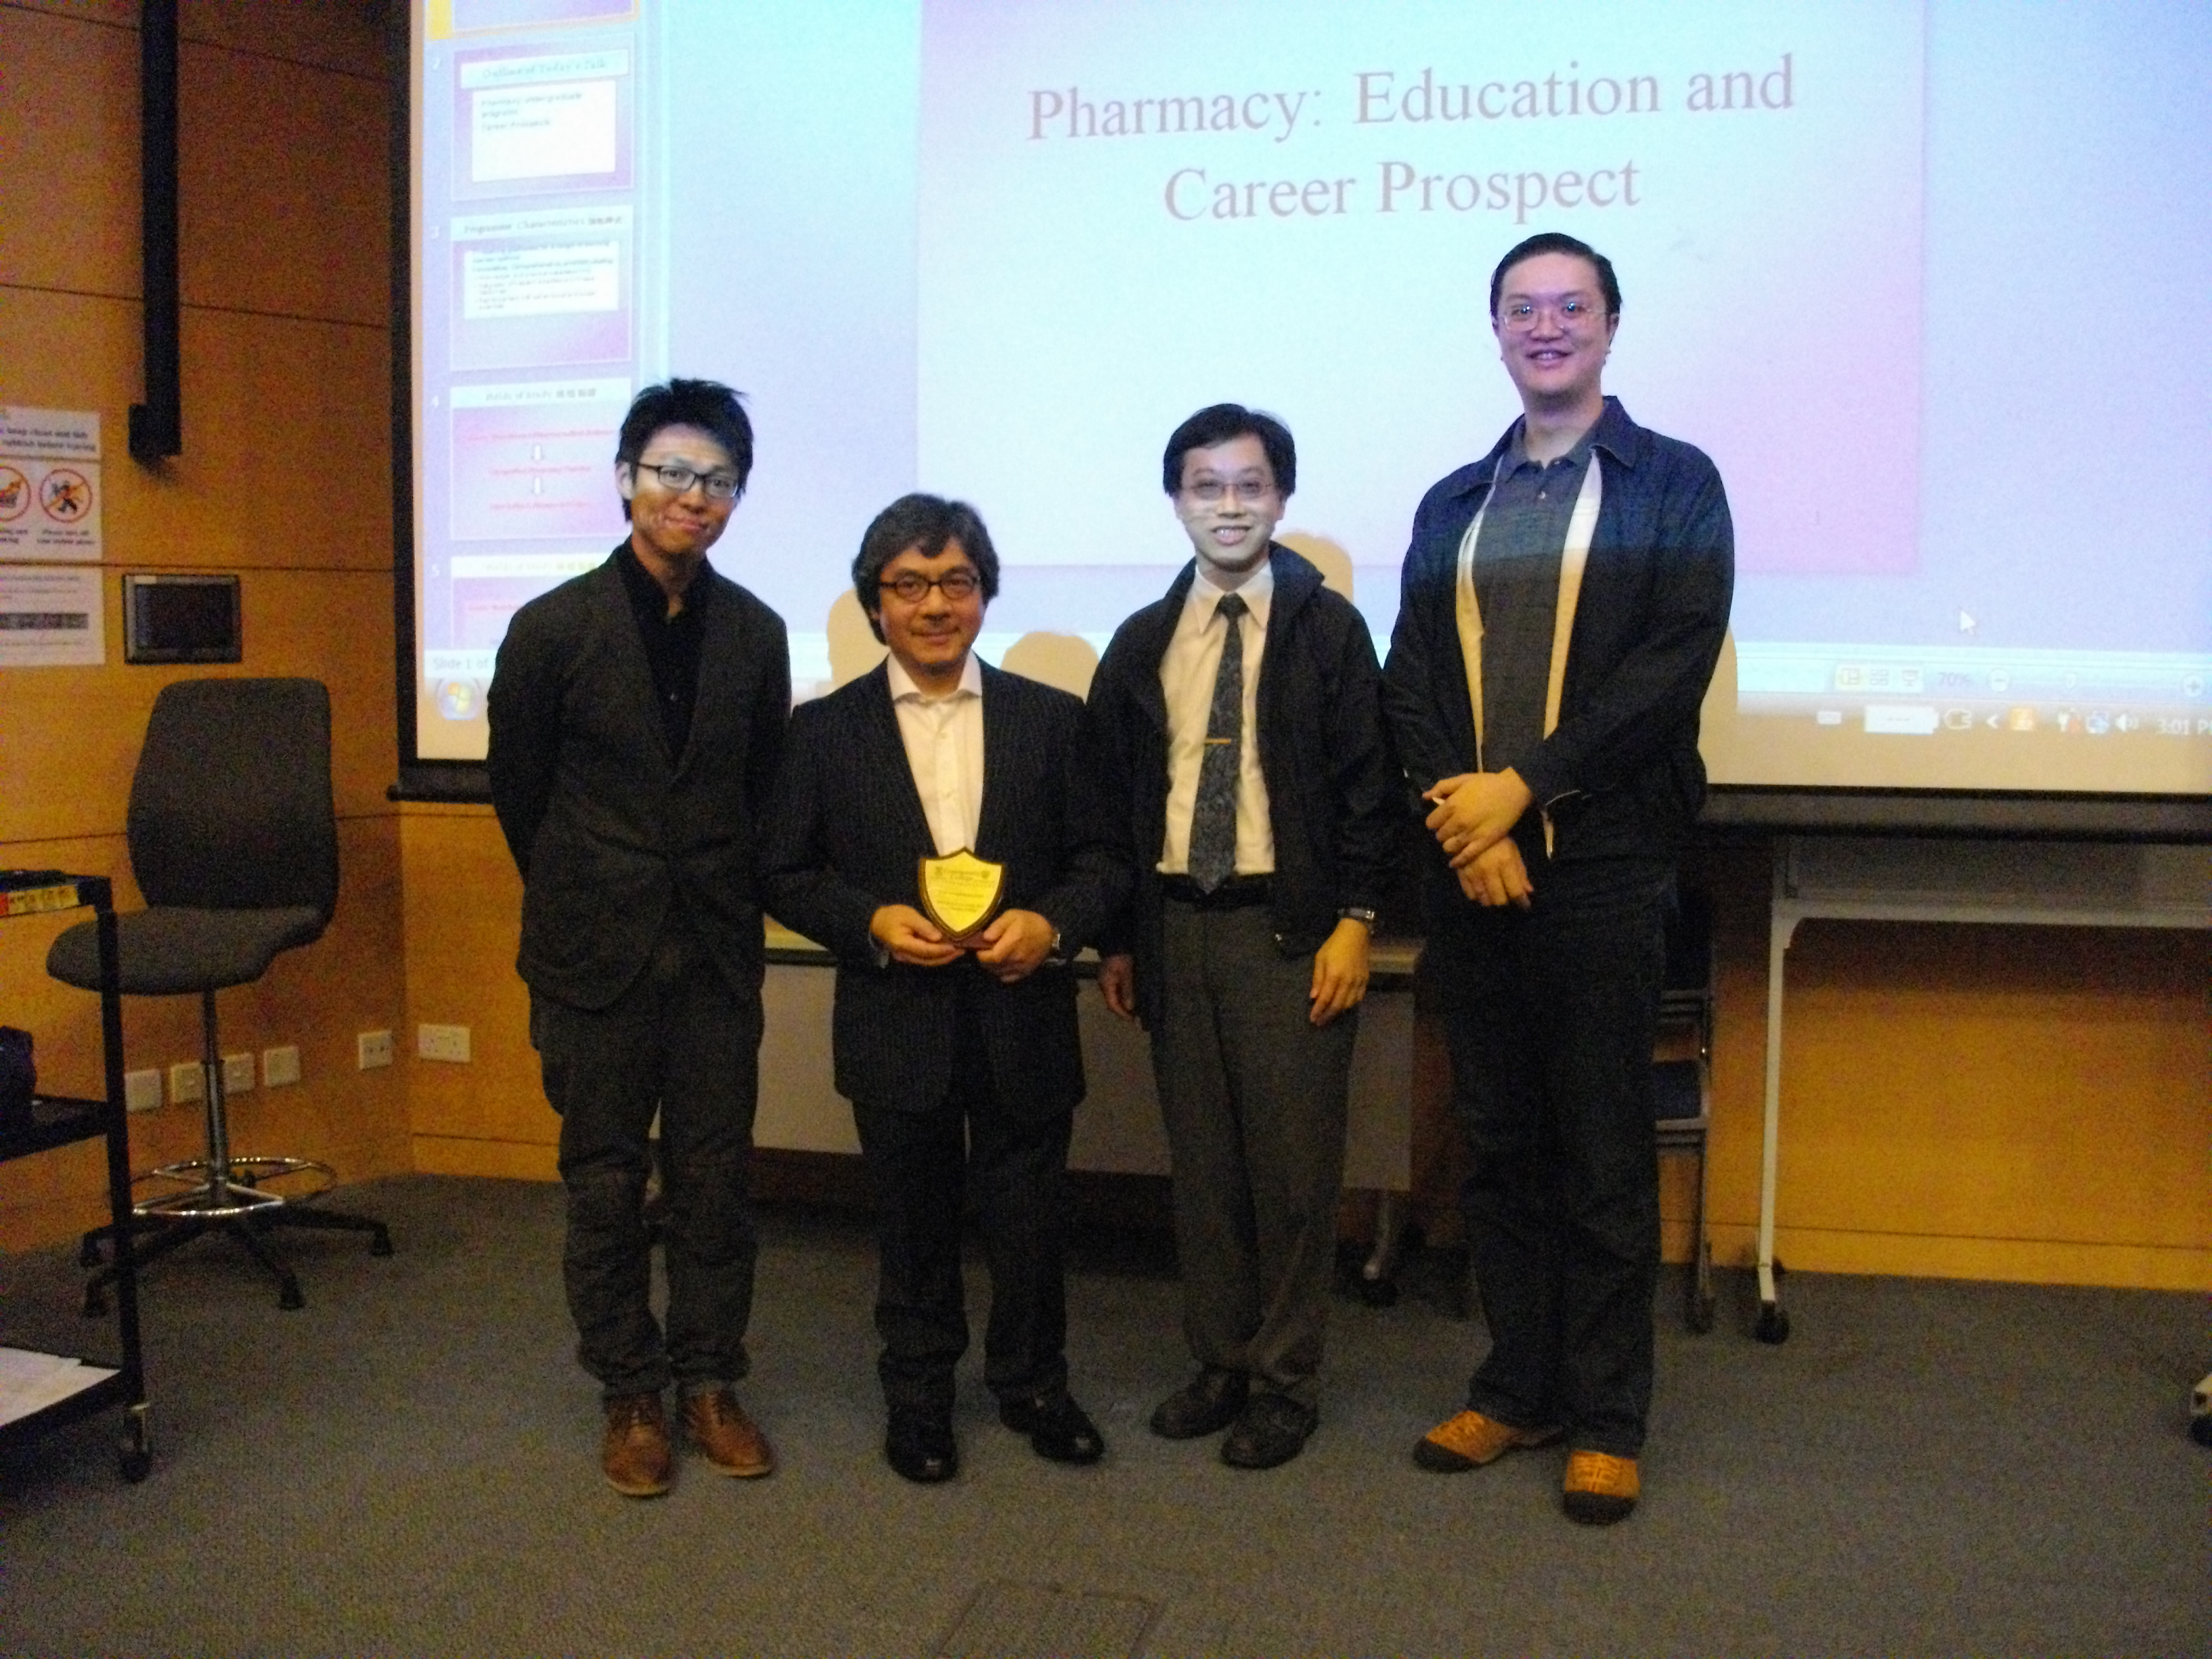 Seminar on Pharmacy: Education and Career Prospects - Photo - 1